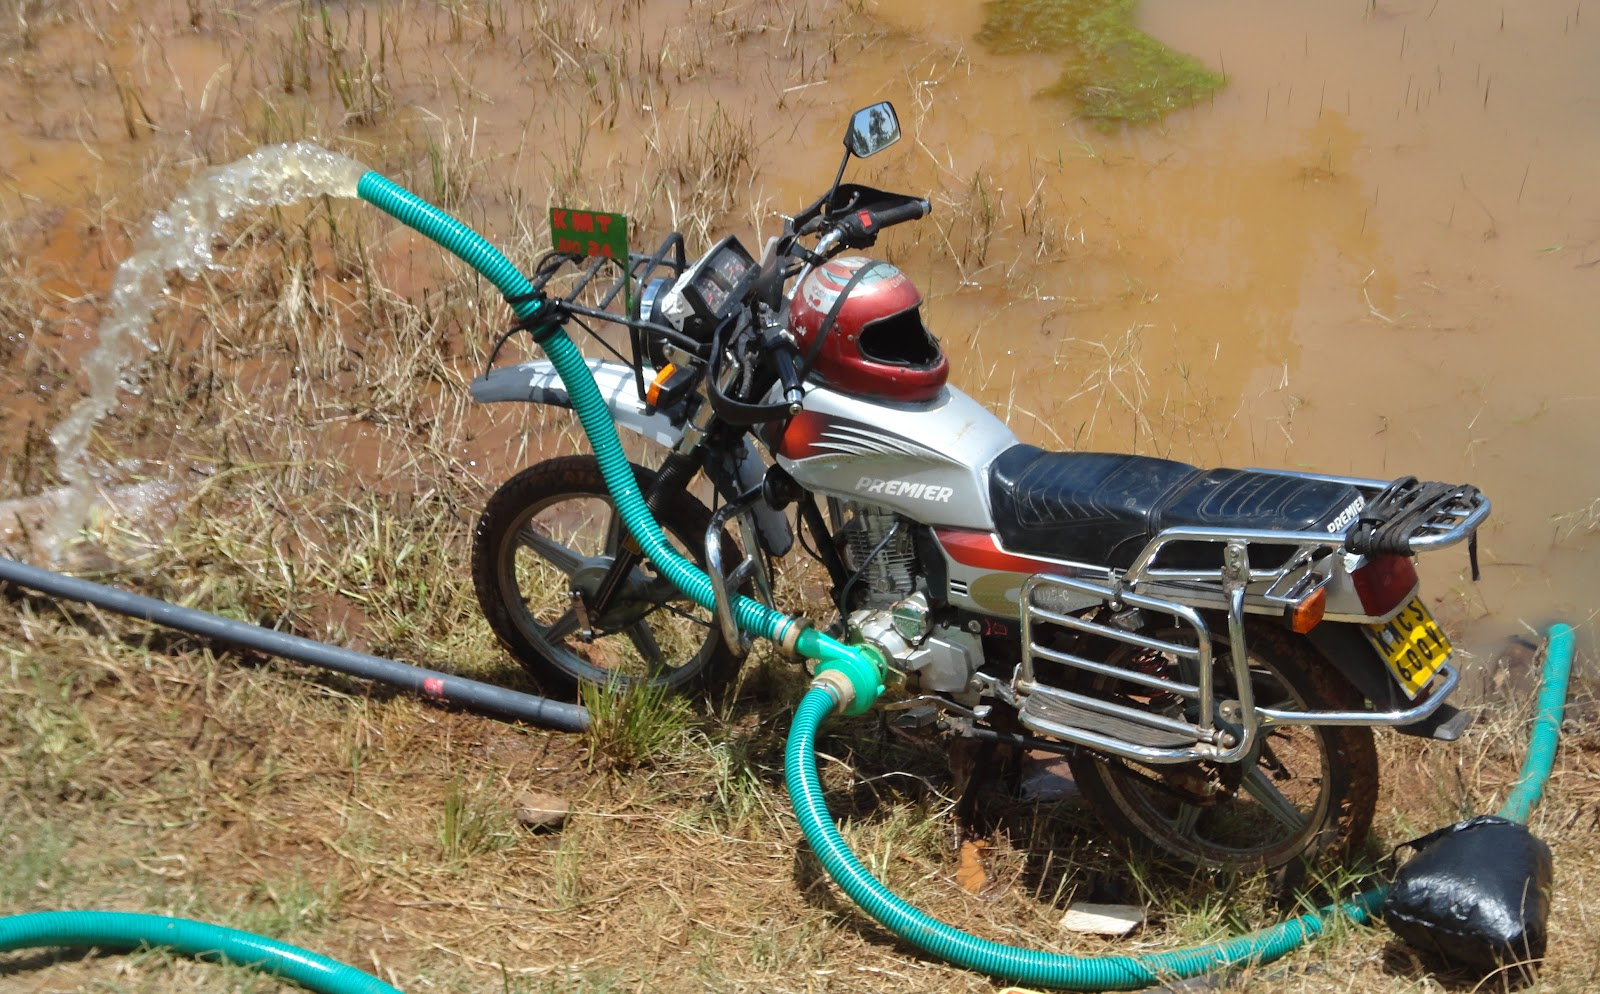 Motorbikes Taking over Cab Services In African Capitals